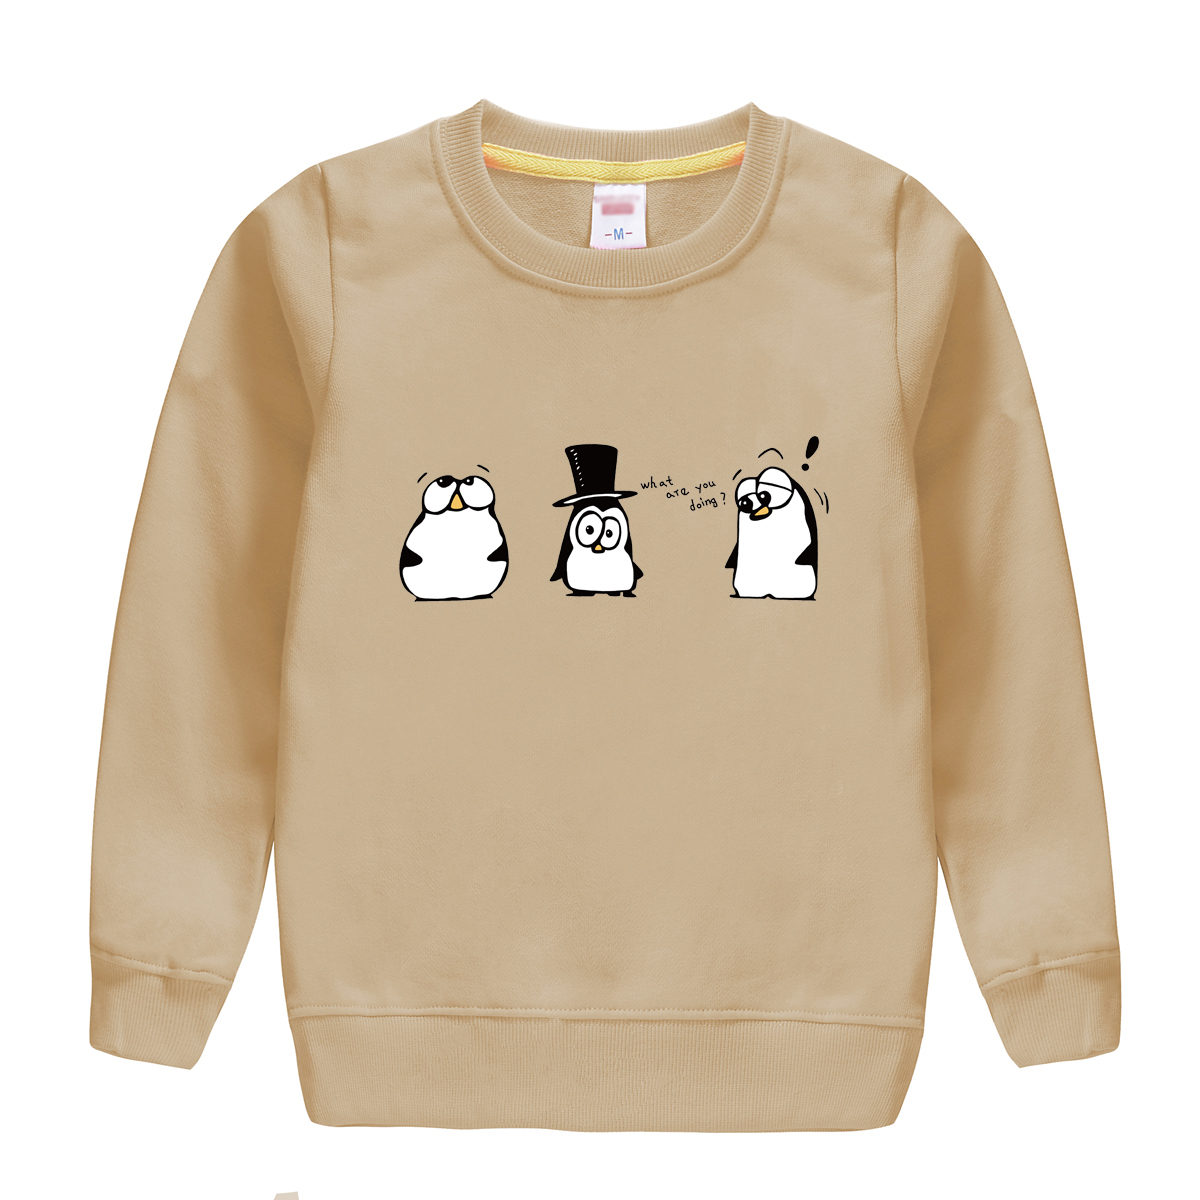 "HTB1vCq.fsnI8KJjSspeq6AwIpXaA - ""what are you doing""pattern printed 2017 new fashion cotton sweatshirt , keeping warm and Non-fading , design for children"